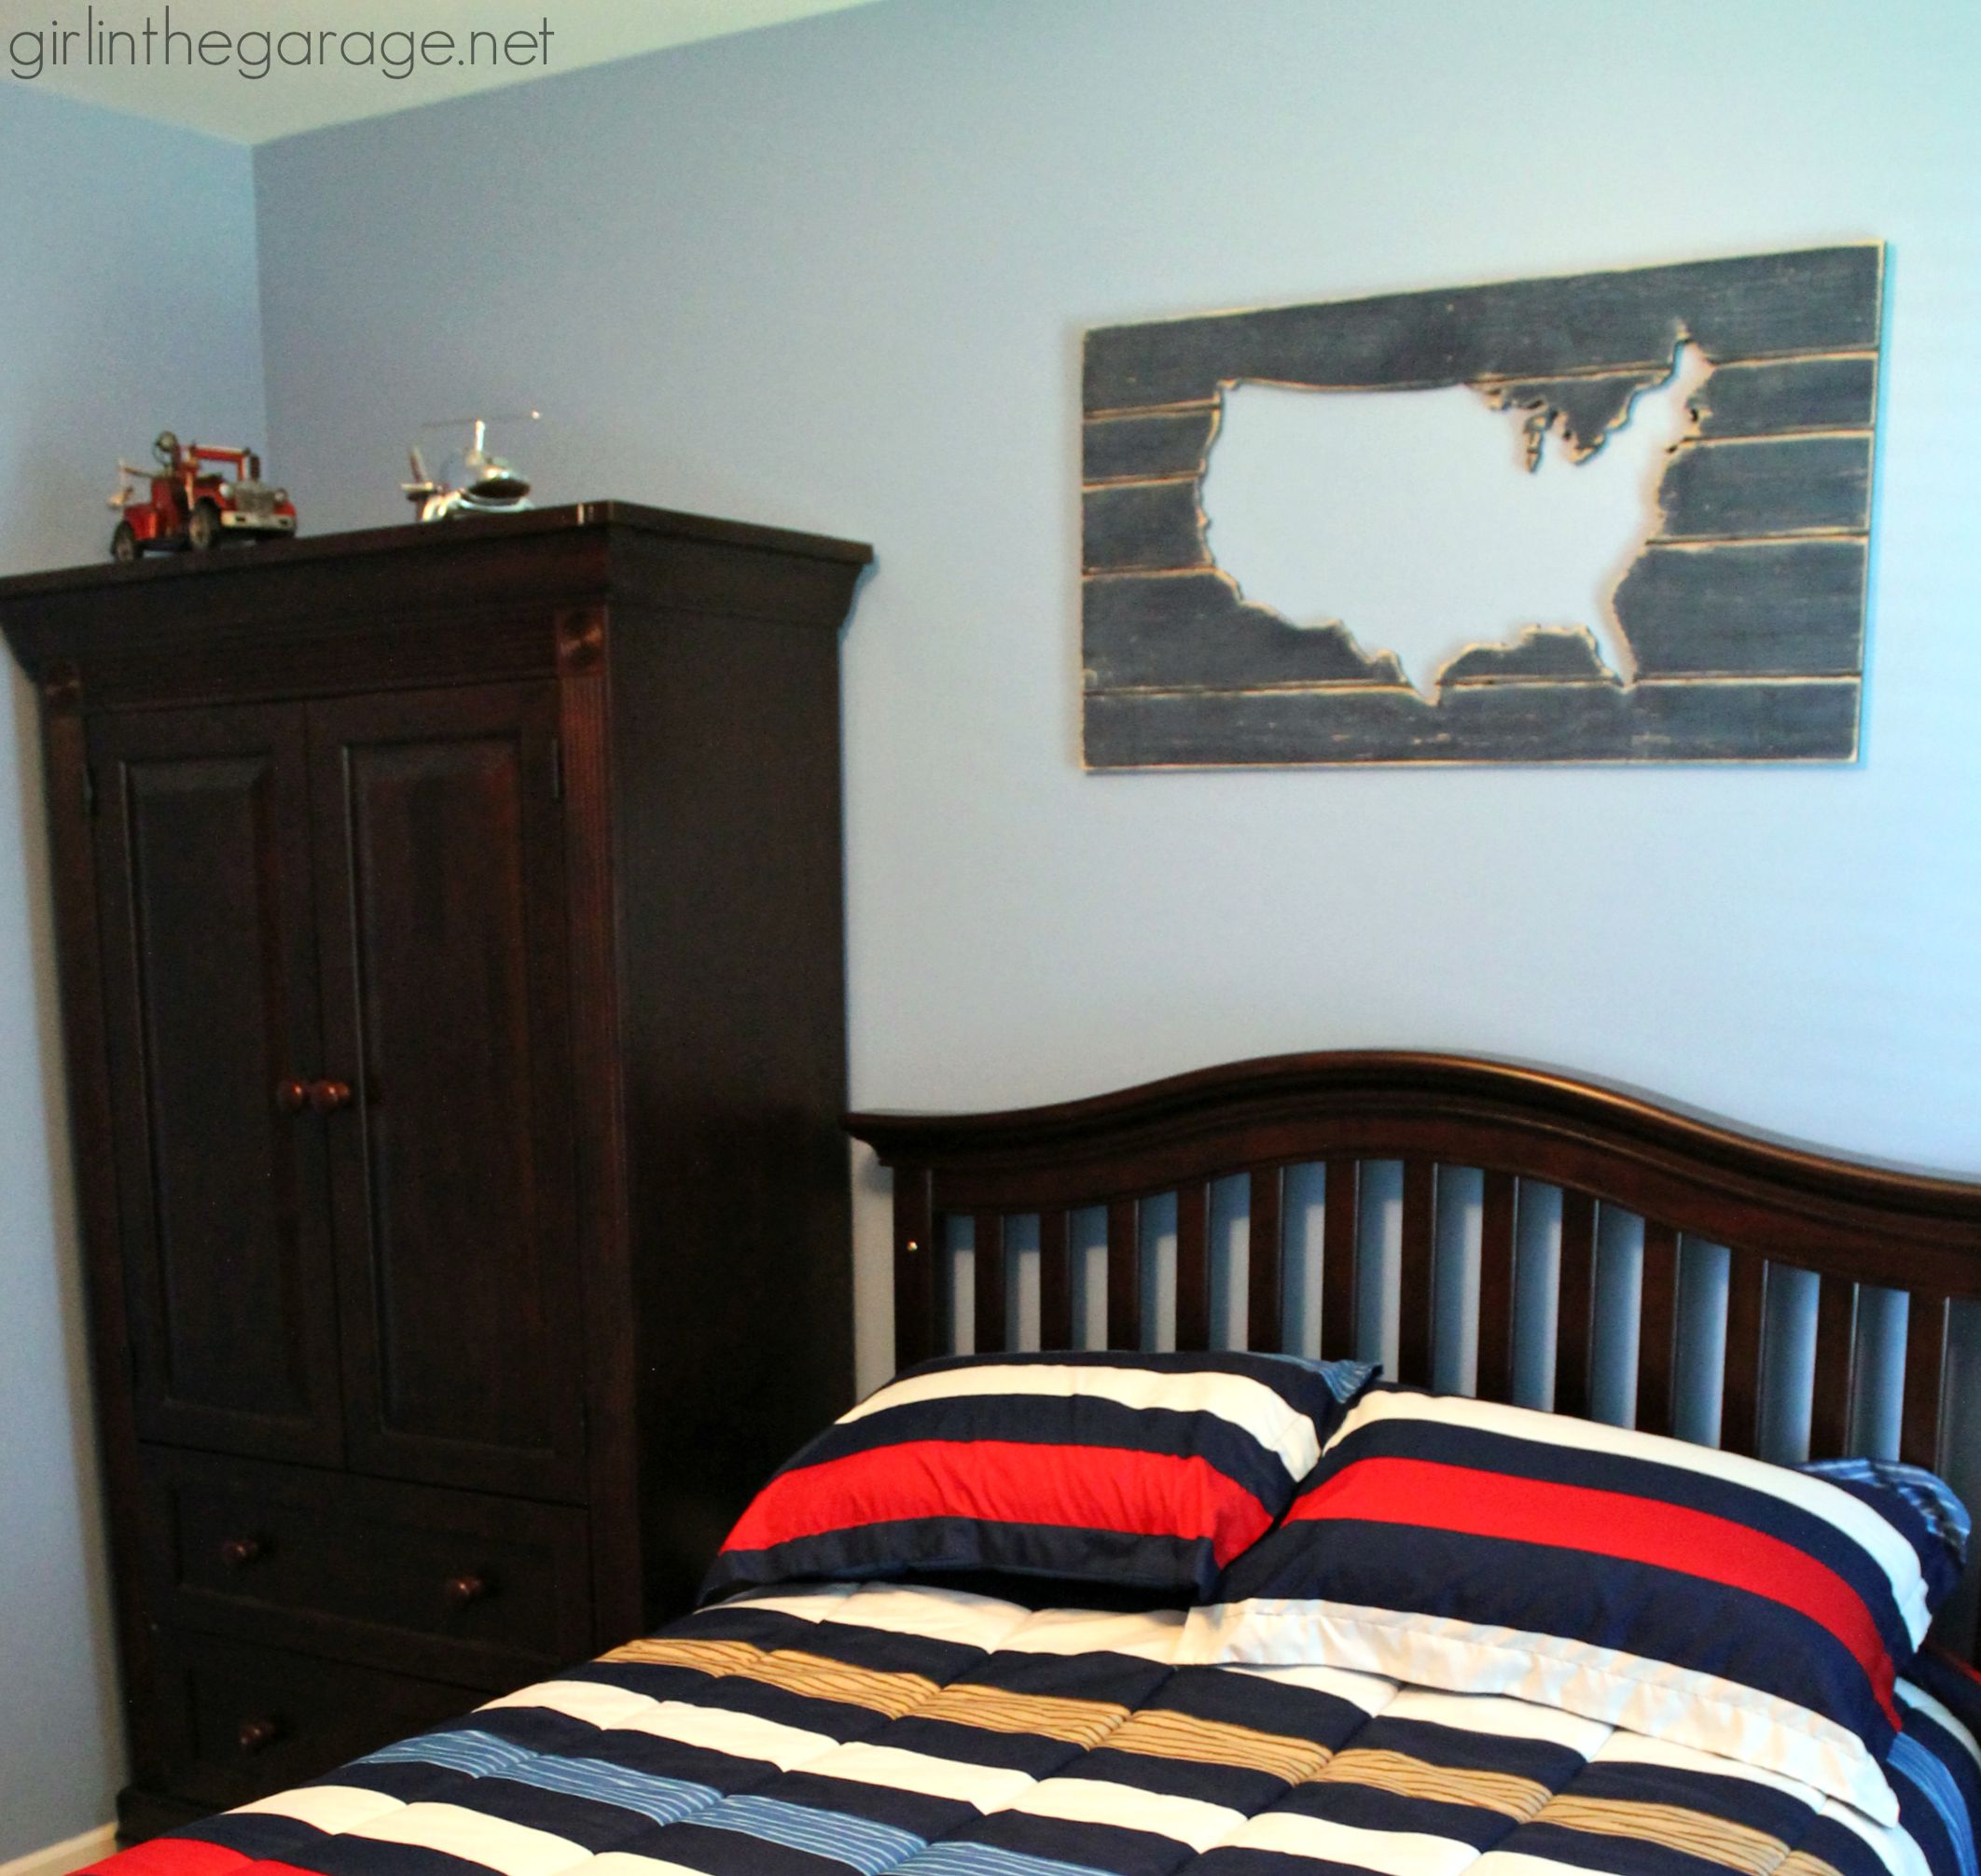 Boys Bedroom Makeover: Boy's Bedroom Makeover Reveal + Tips For Painting Walls